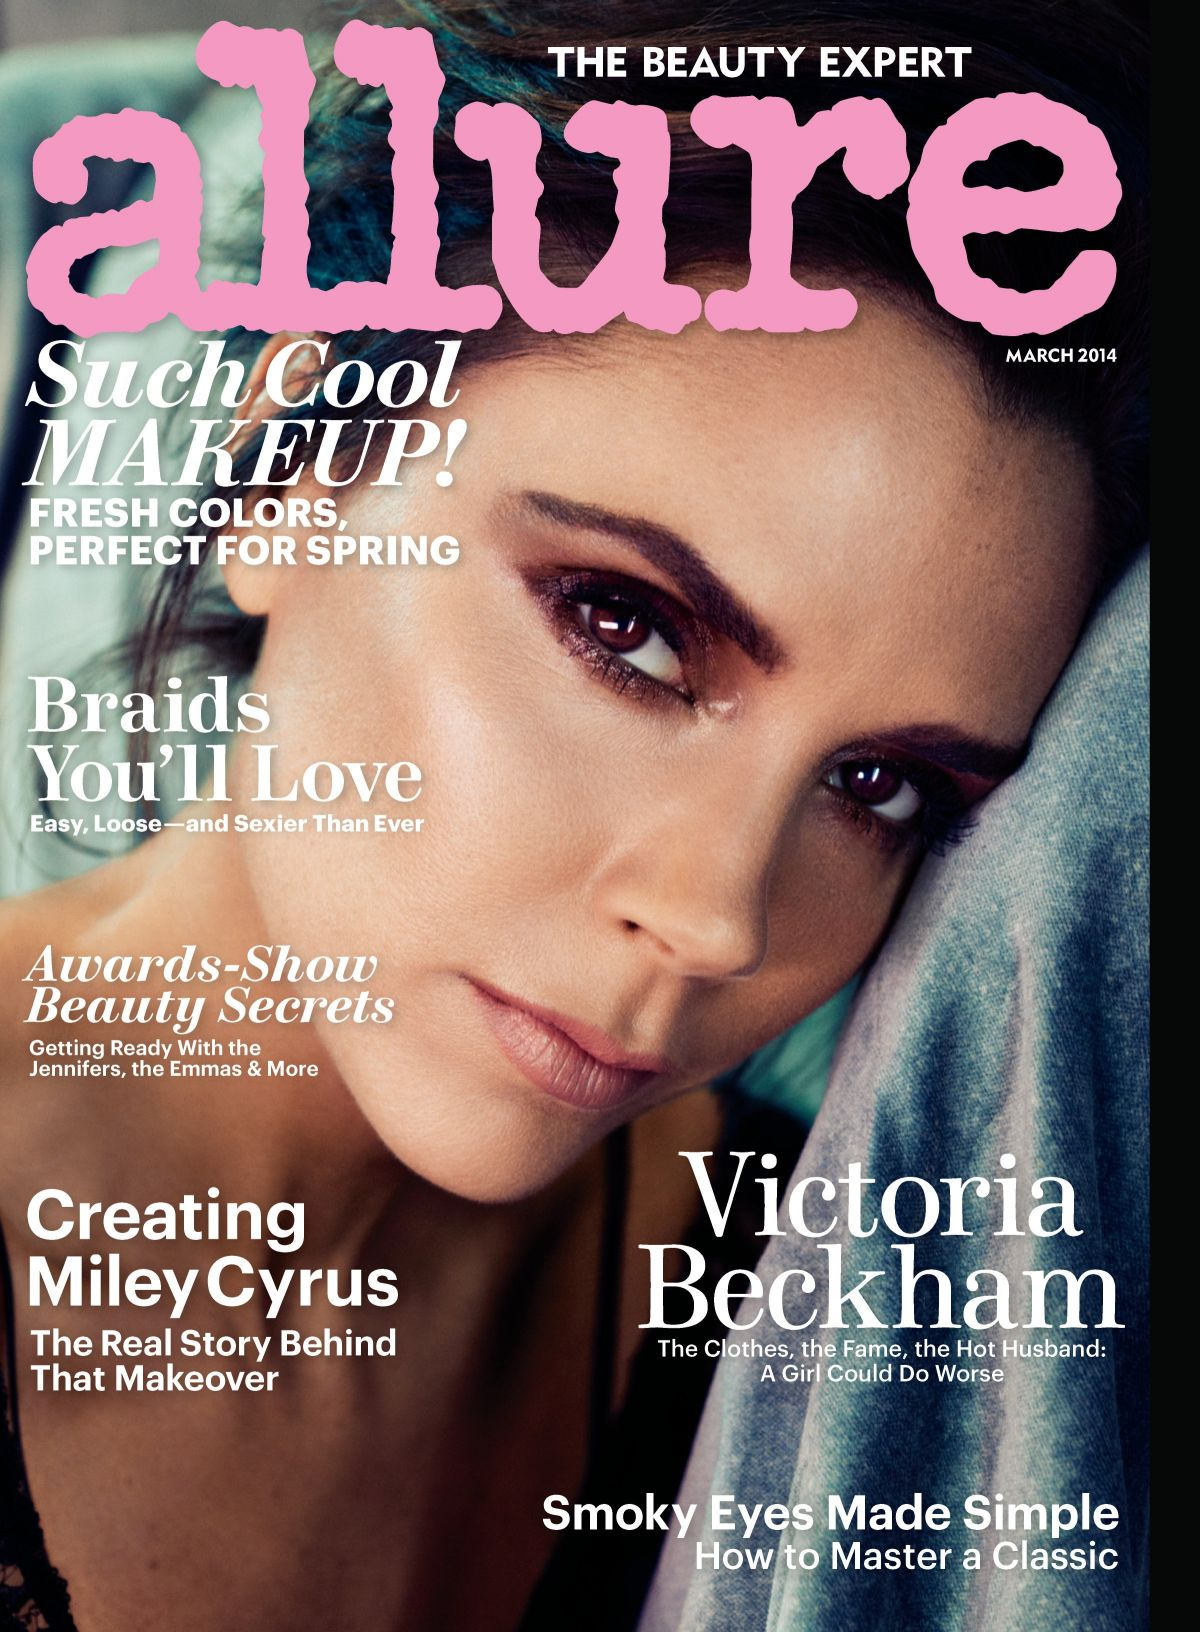 VICTORIA BECKHAM on the Cover of Allure Magazine, March 2014 Issue